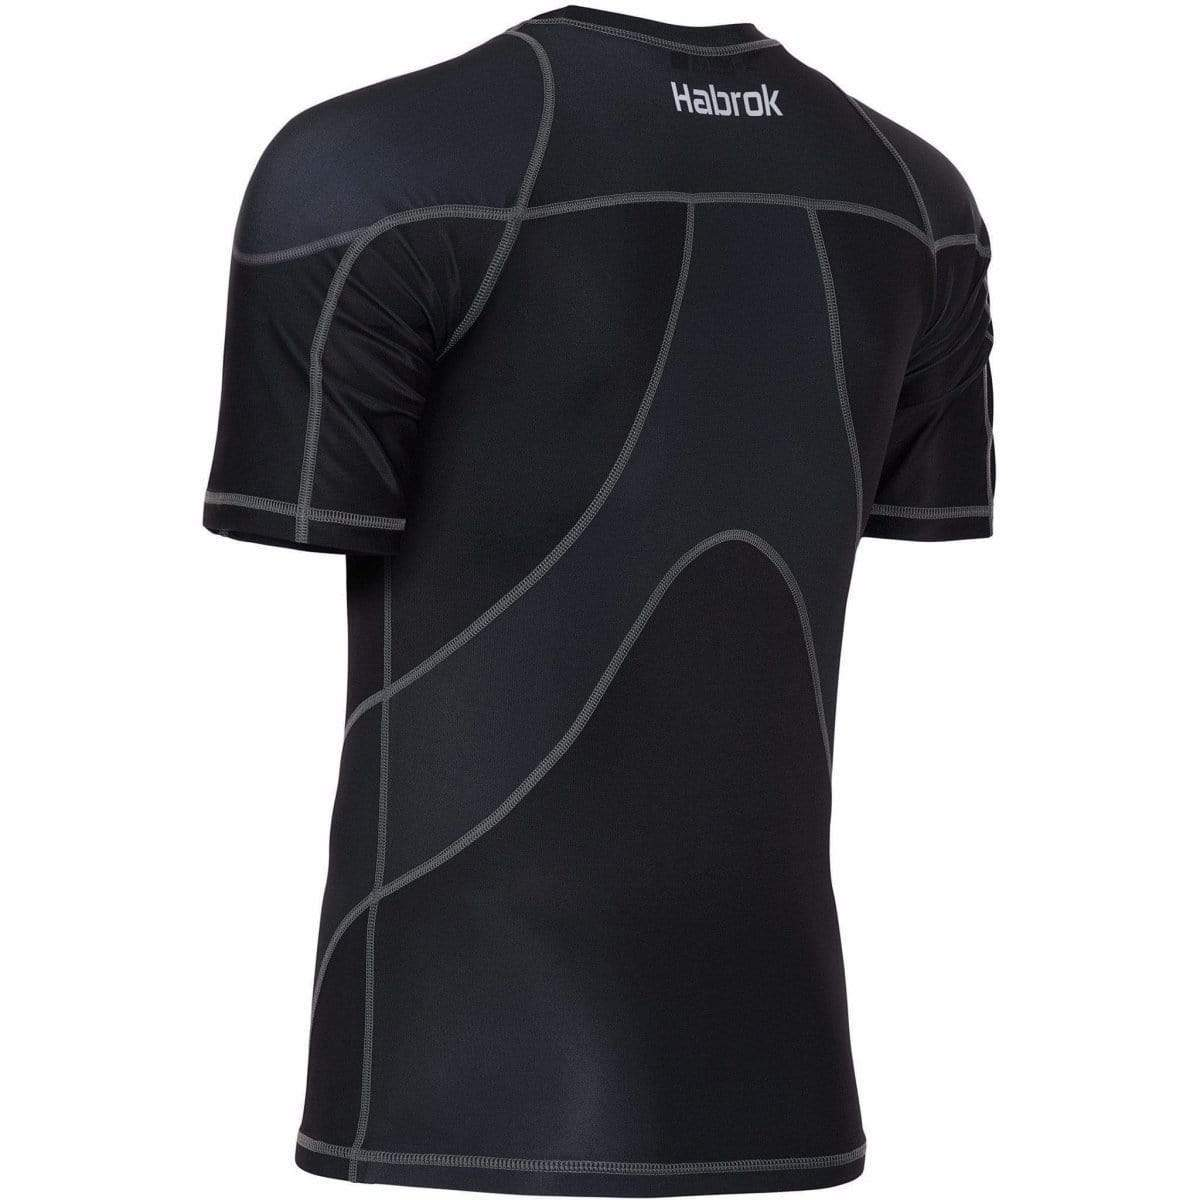 Habrok Rash Guard S / BLACK Pugnator 2.0 | Rash Guard | Half Sleeve | Men | Black Pugnator | BJJ Rash Guard | Habrok